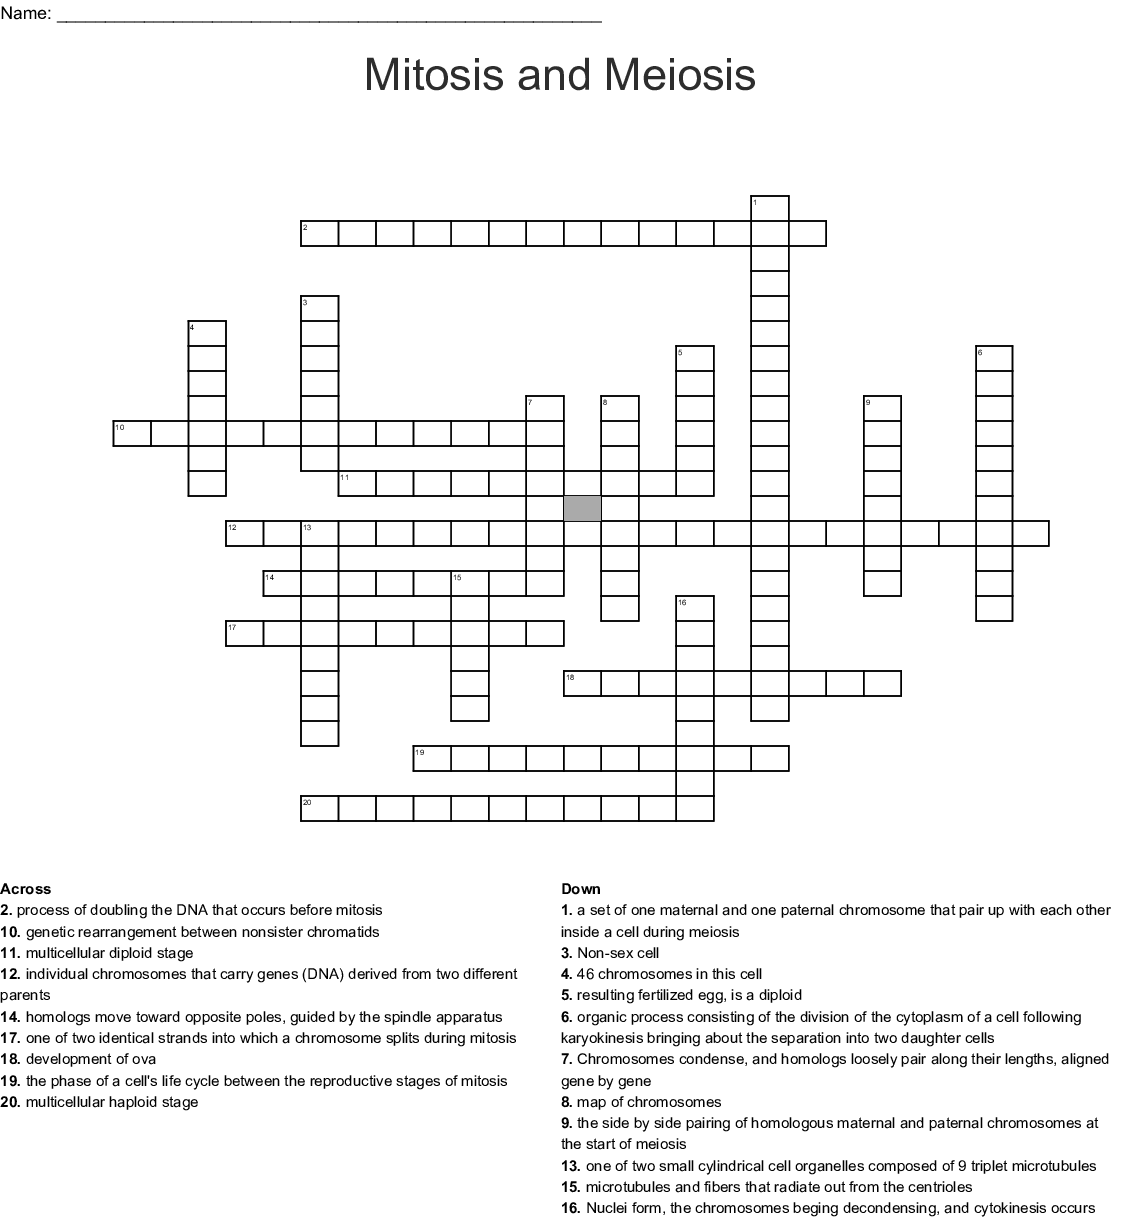 Mitosis And Meiosis Crossword